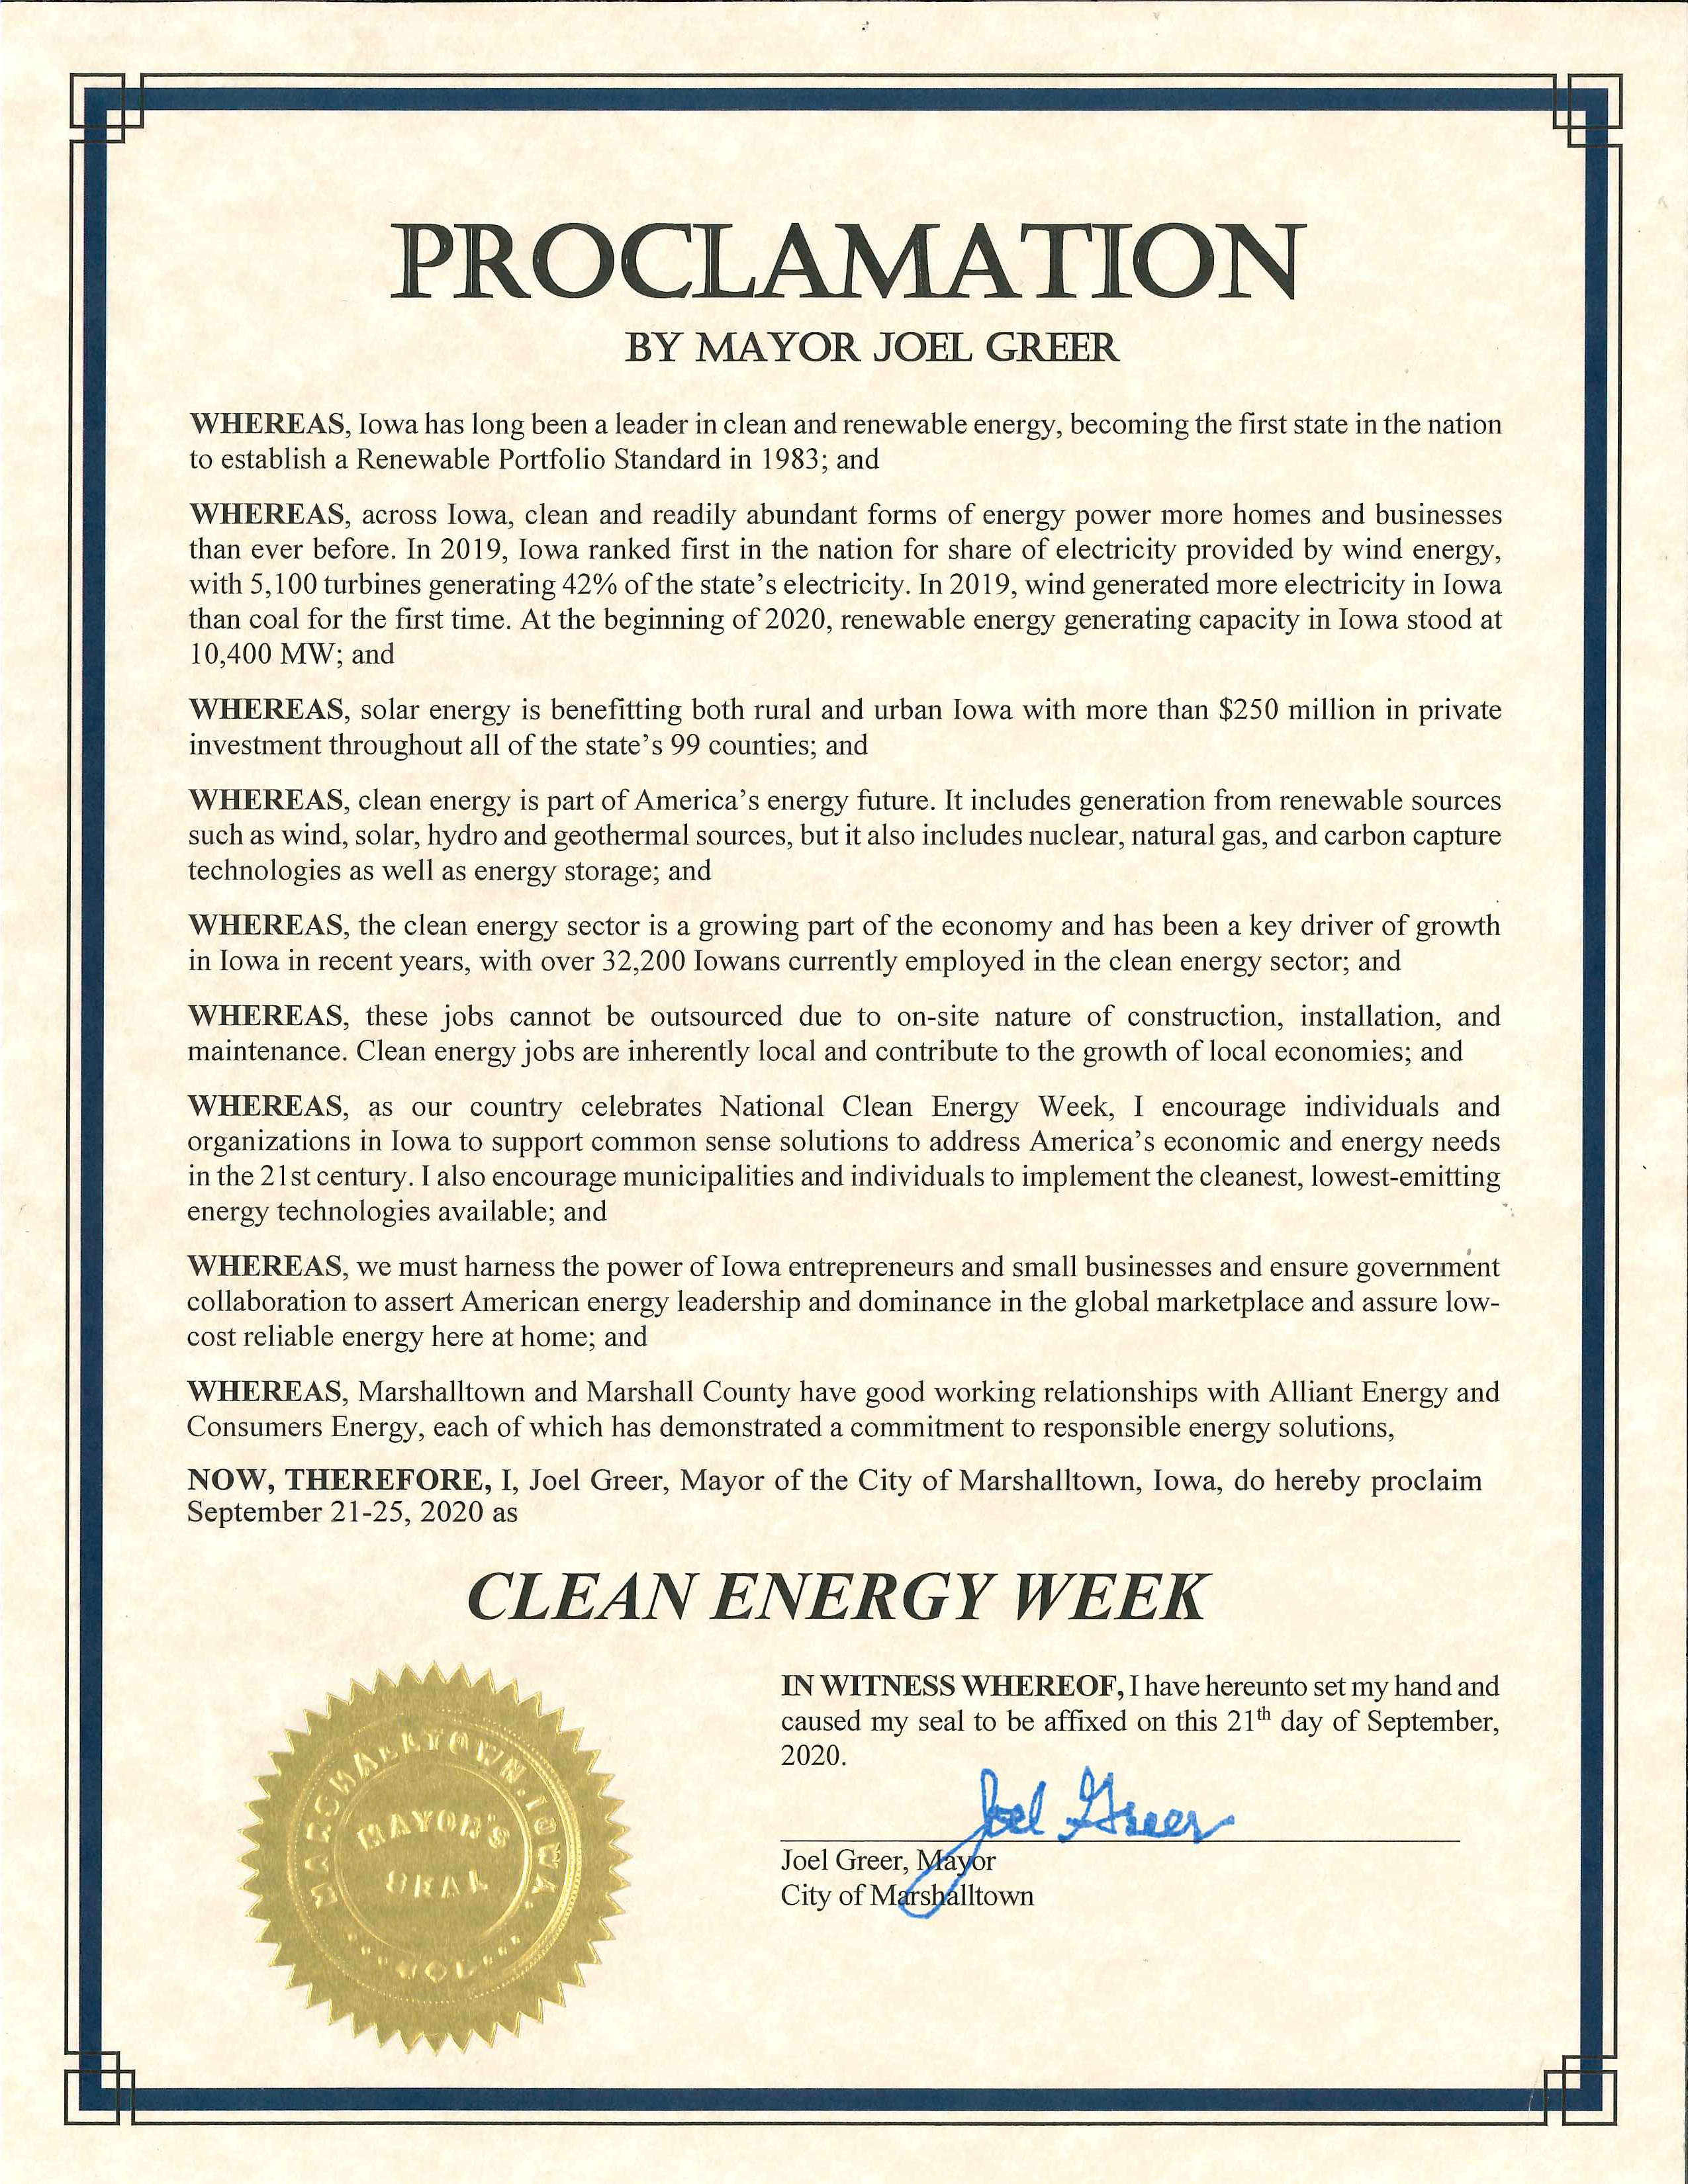 2020-09-21 Clean Energy Week